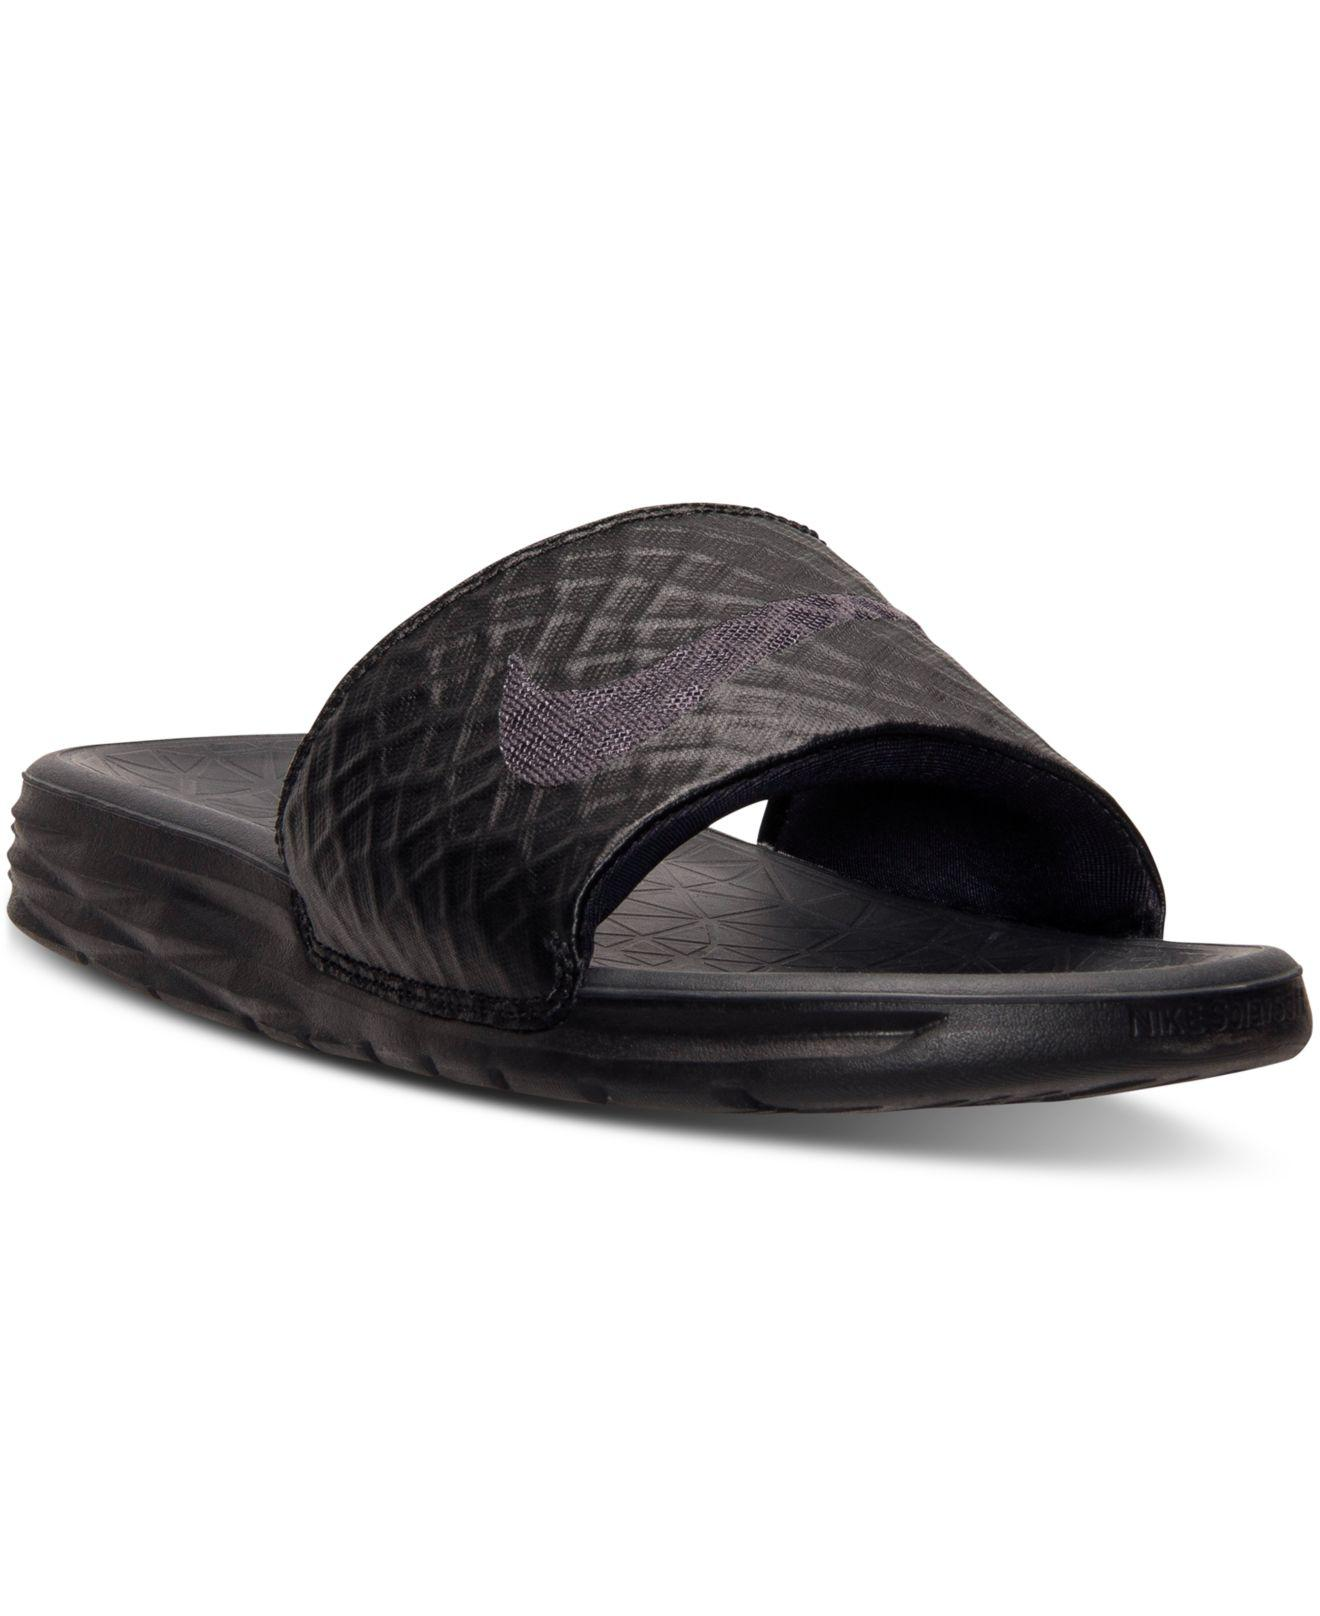 f49ca1656674 Lyst - Nike Benassi Solarsoft Black  Anthracite in Black for Men ...